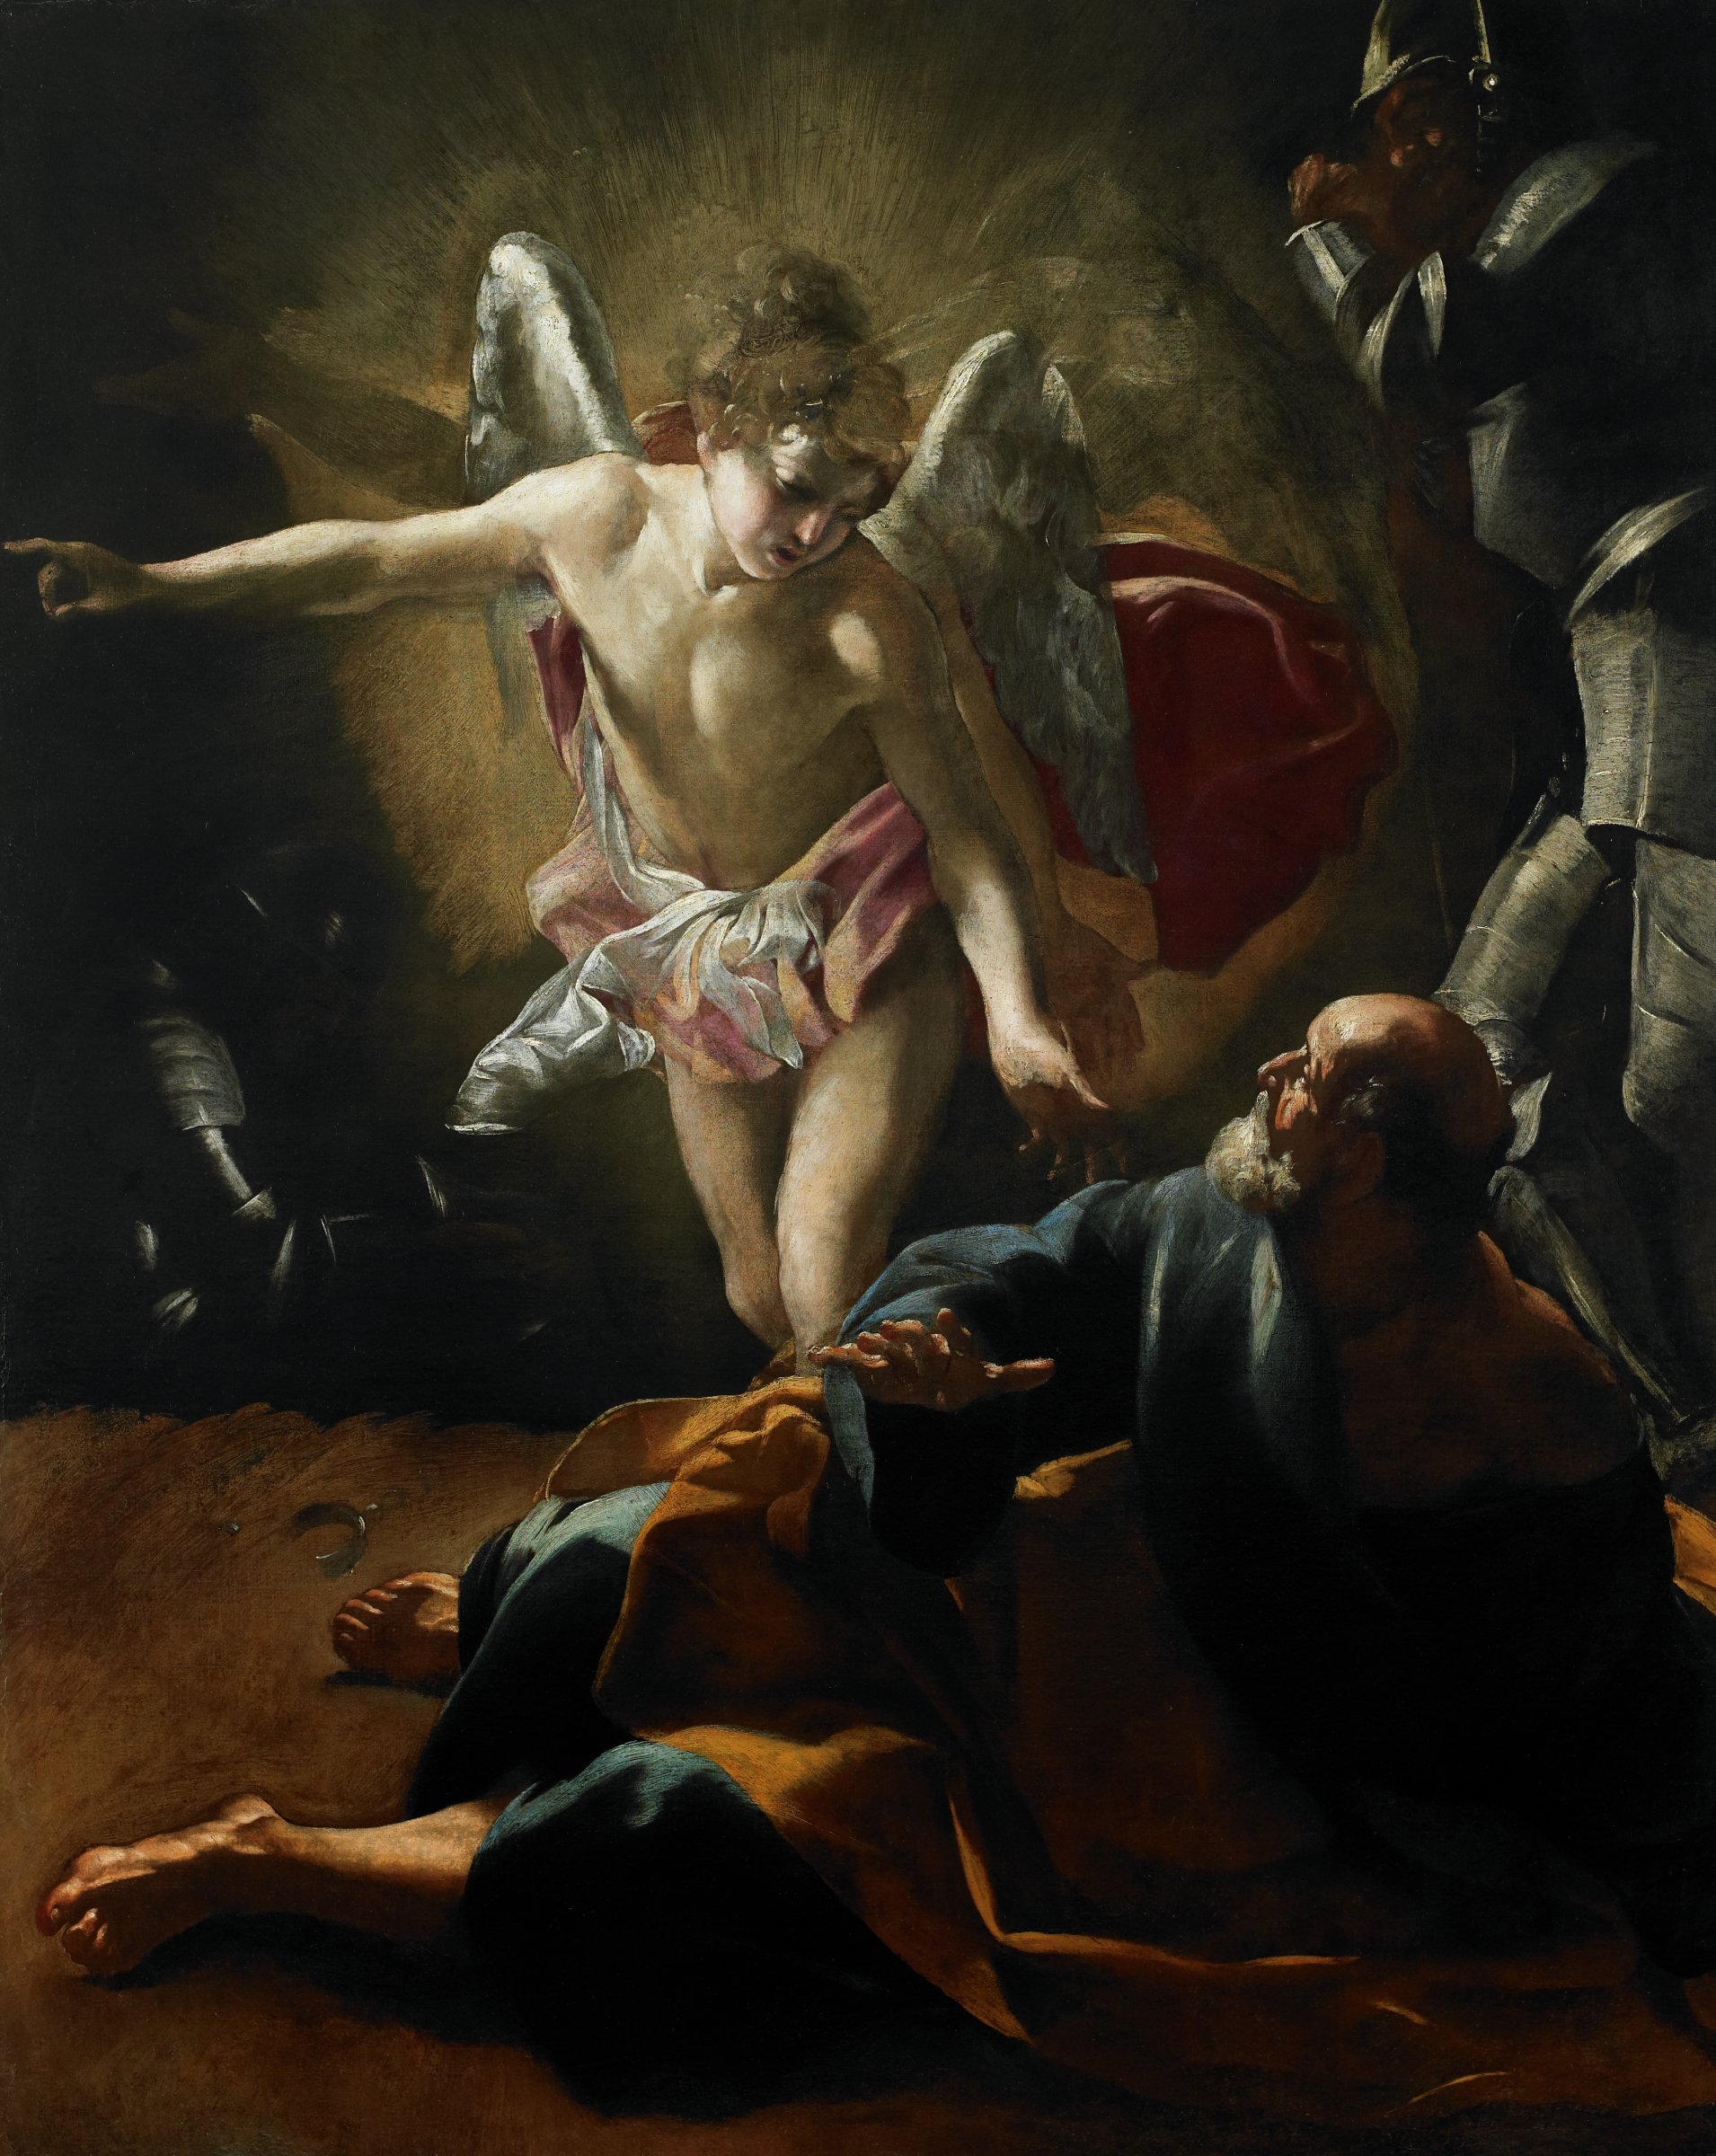 In the center of the painting an angel has just arrived in a blaze of light with garments billowing behind. As he touches Peter's shoulder with his left hand, he points with his right to gesture outside of the picture plane. In the upper right a soldier shields his eyes from the angel's light, while another soldier is just visible in the far left background. The painting is unfinished, with pentimenti revealing the artist's many compositional changes.